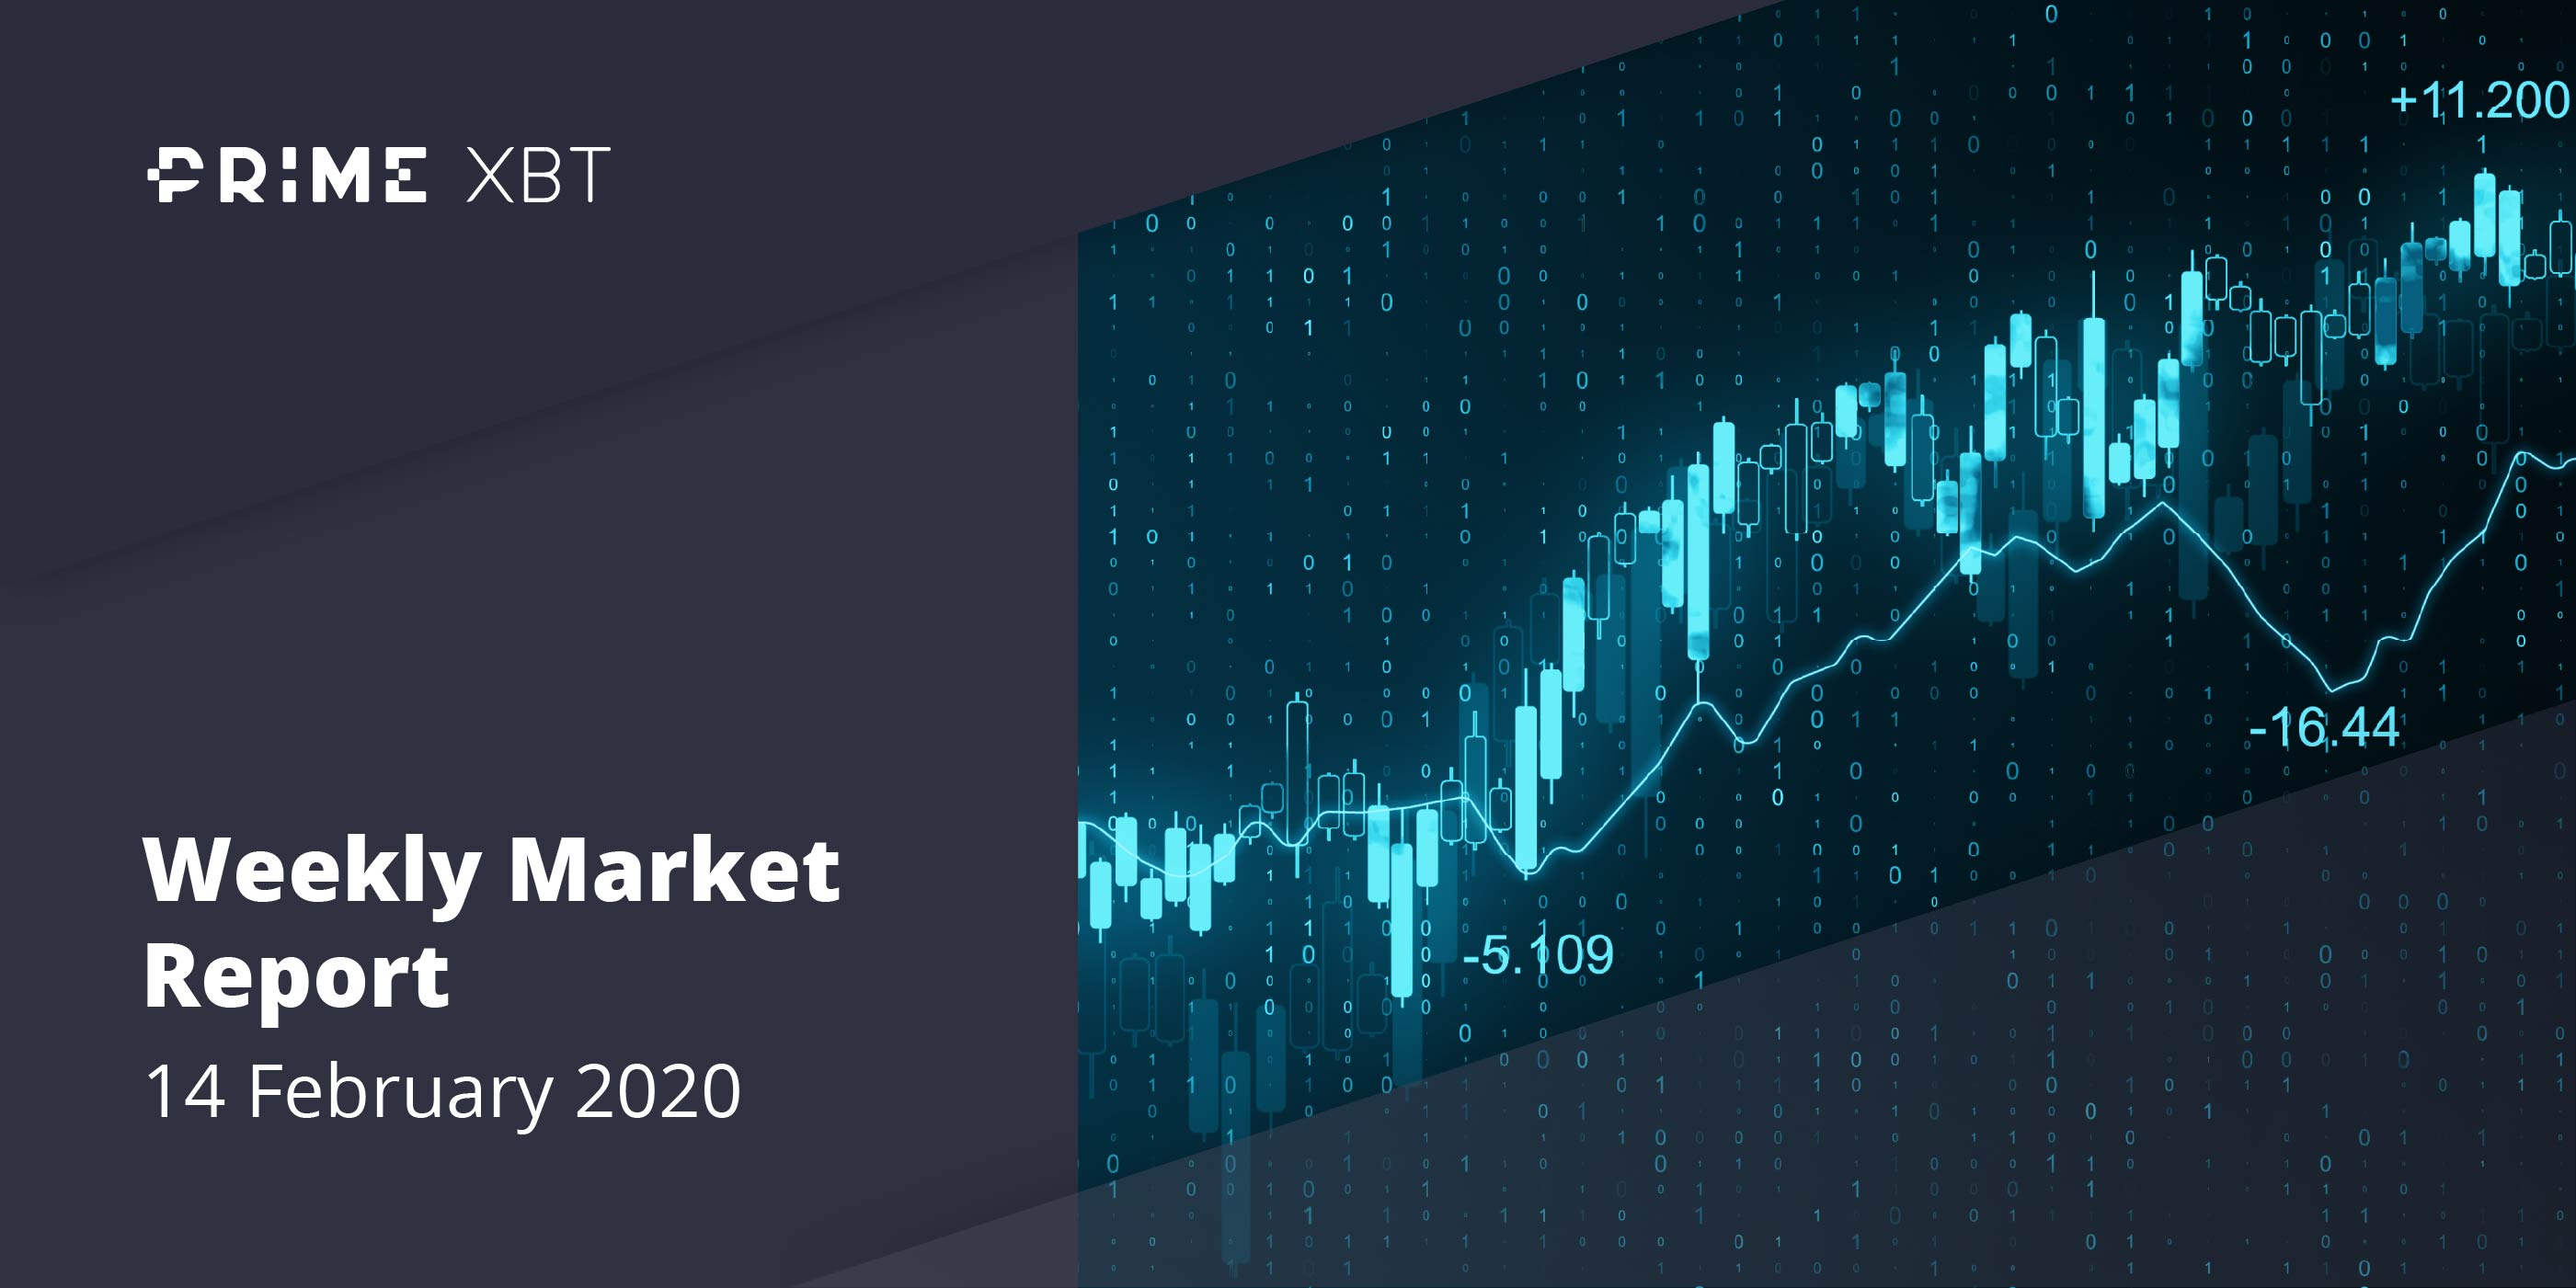 Crypto Market Report: New Bitcoin All-Time High By September, Altcoins Continue To Moon - 14.02.20